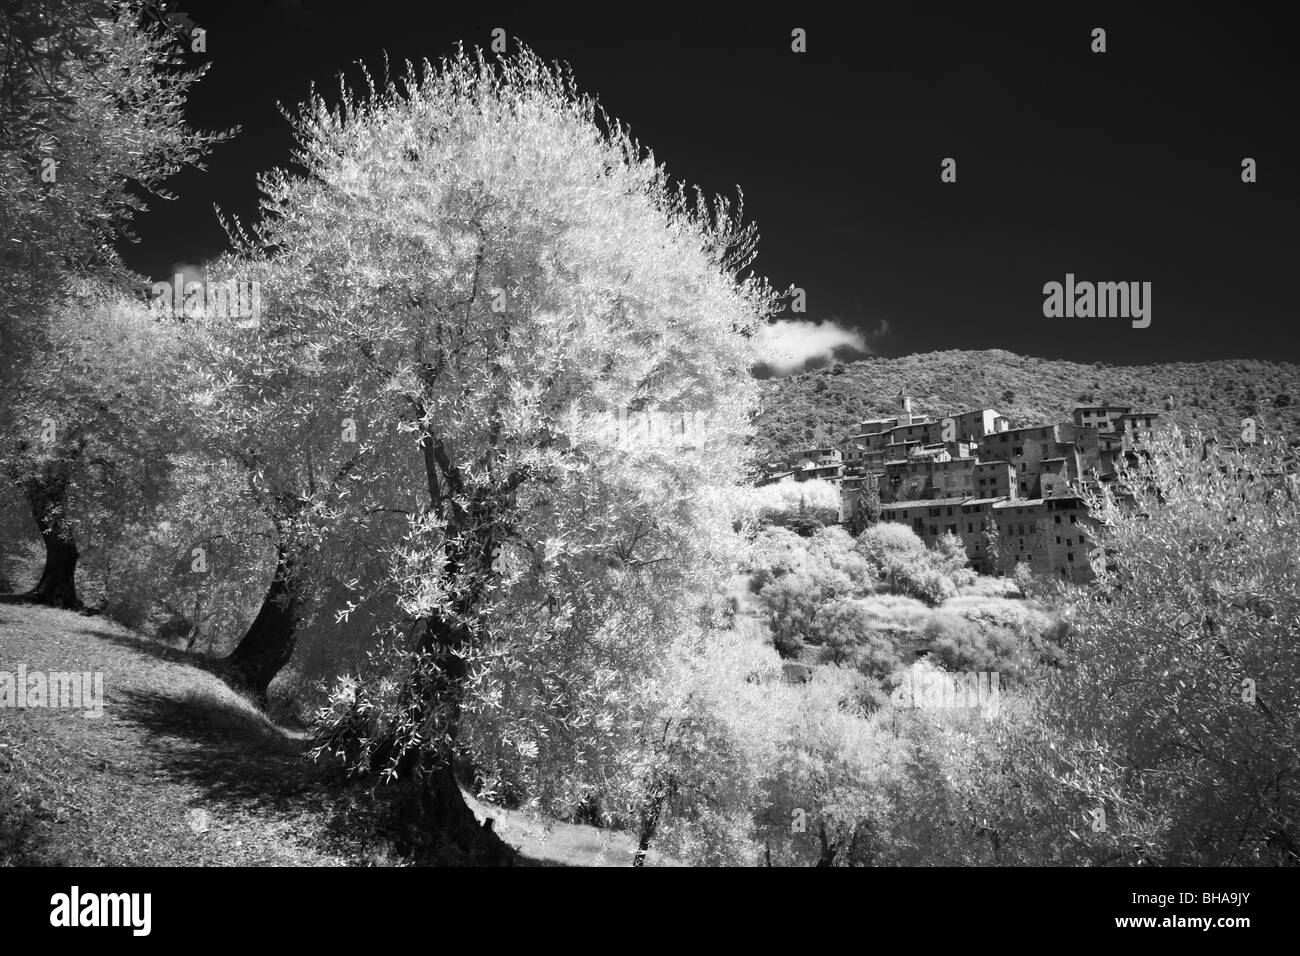 the hill top village of Peillon, Alpes Maritime, Provence, France - Stock Image